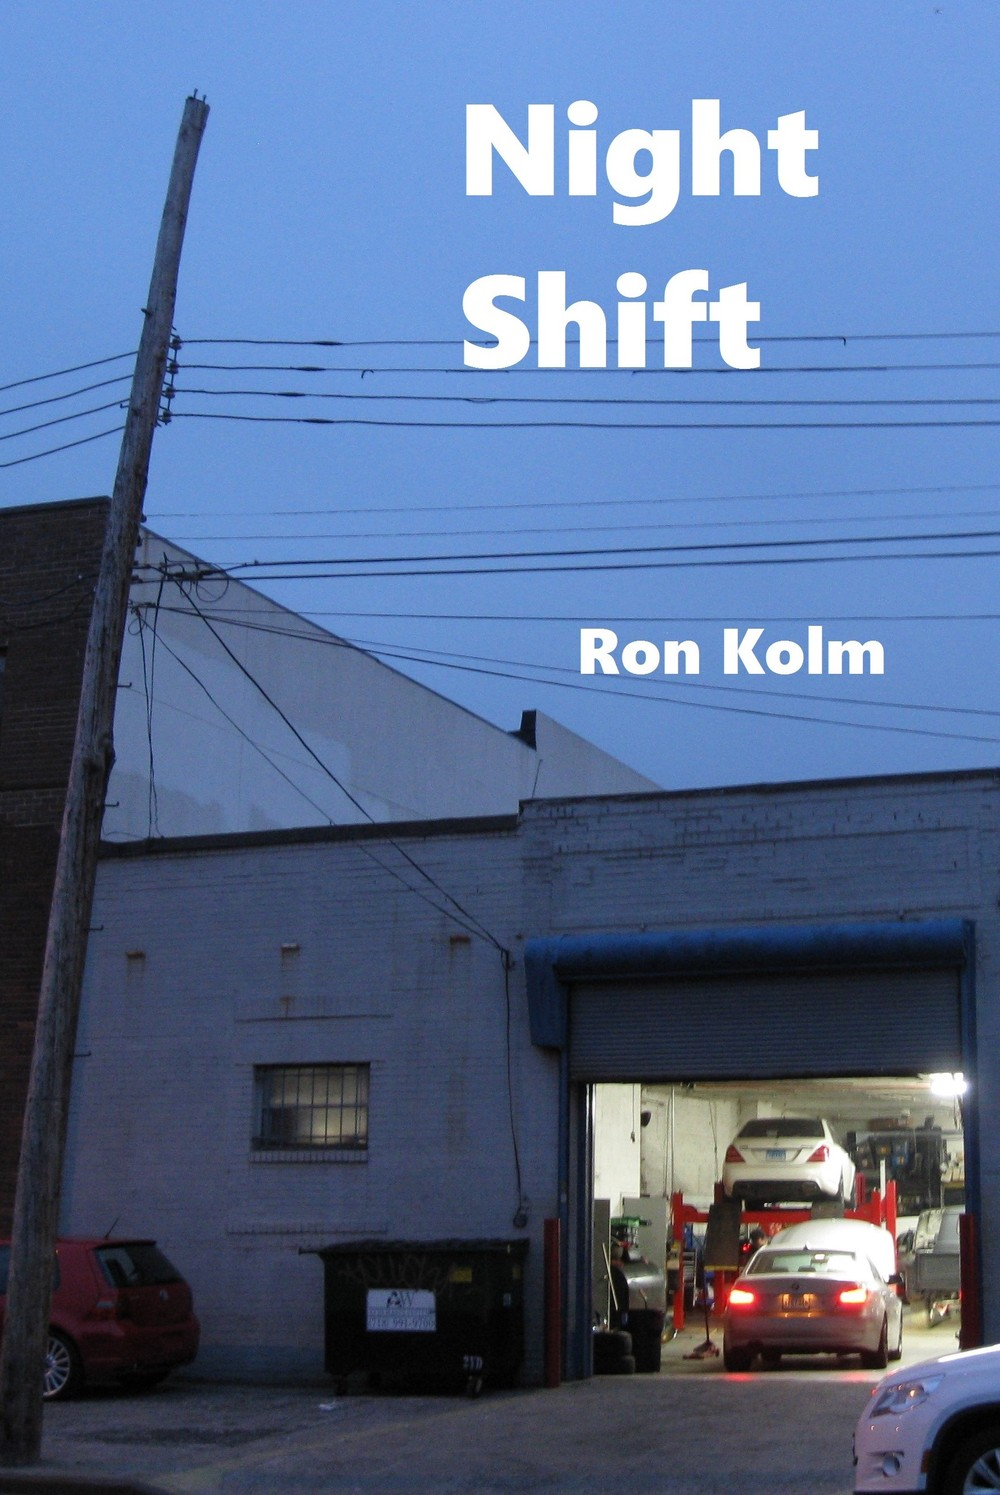 The cover of  Night Shift  by Ron Kolm